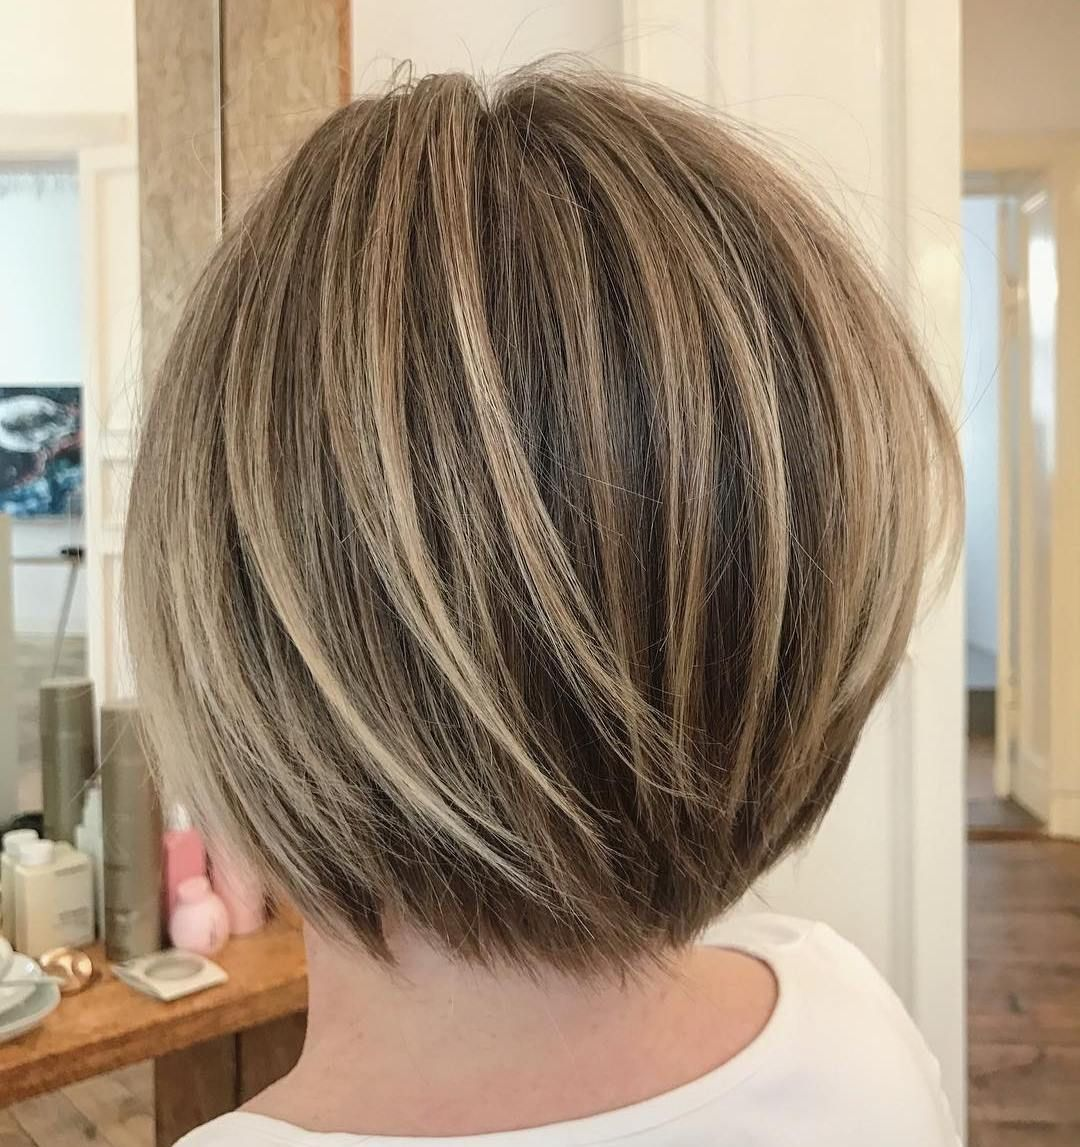 35+ Bob hairstyles for fine thin hair information